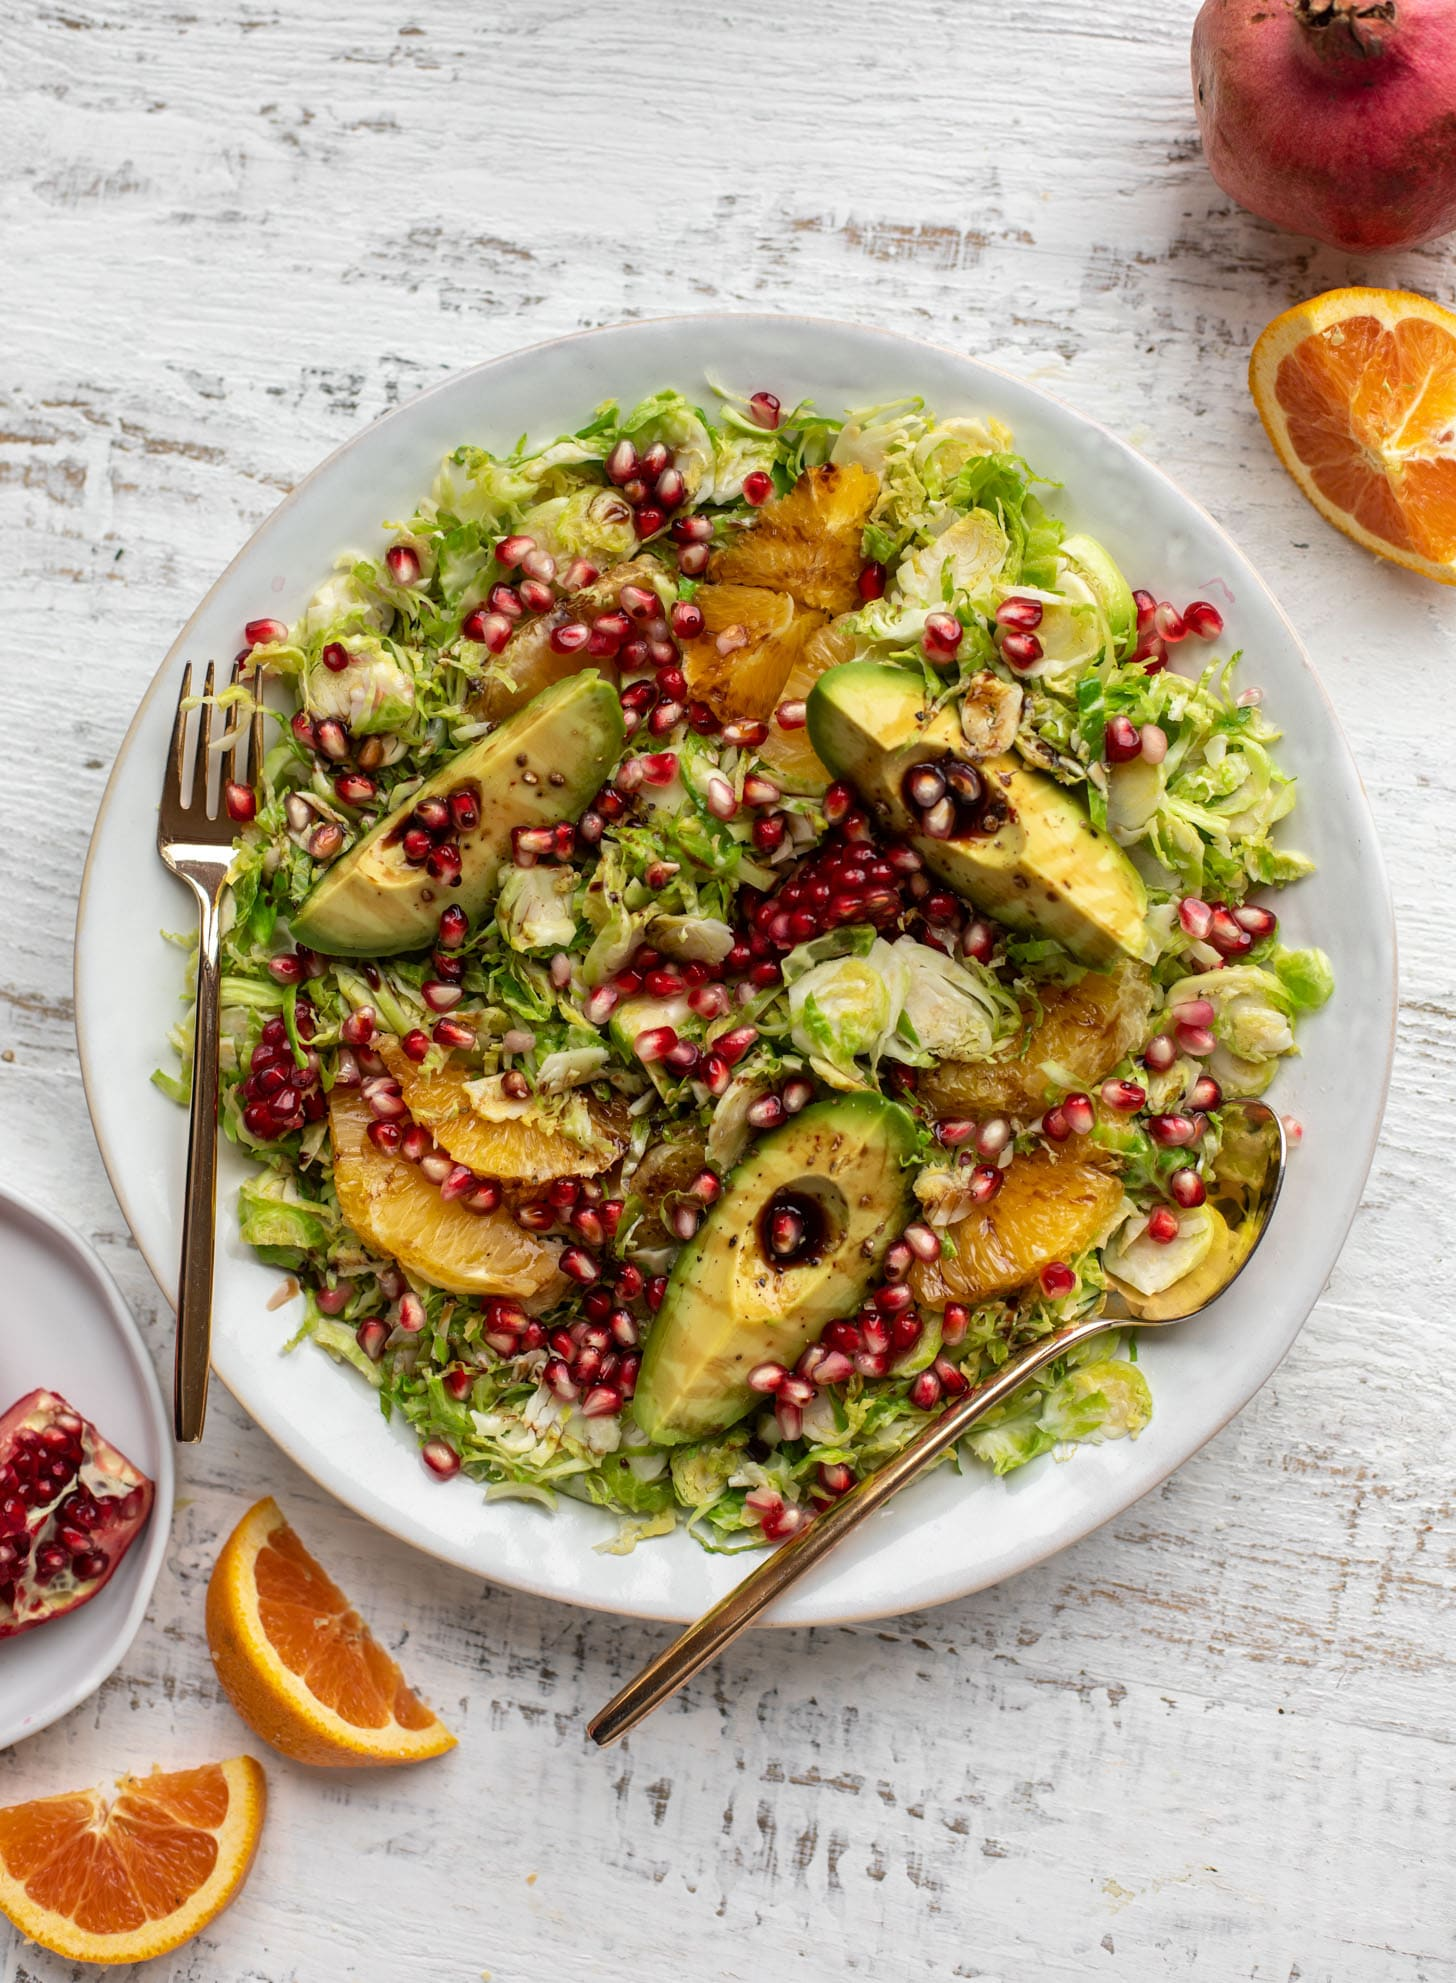 shredded citrus brussels sprouts salad with avocado and pomegranate